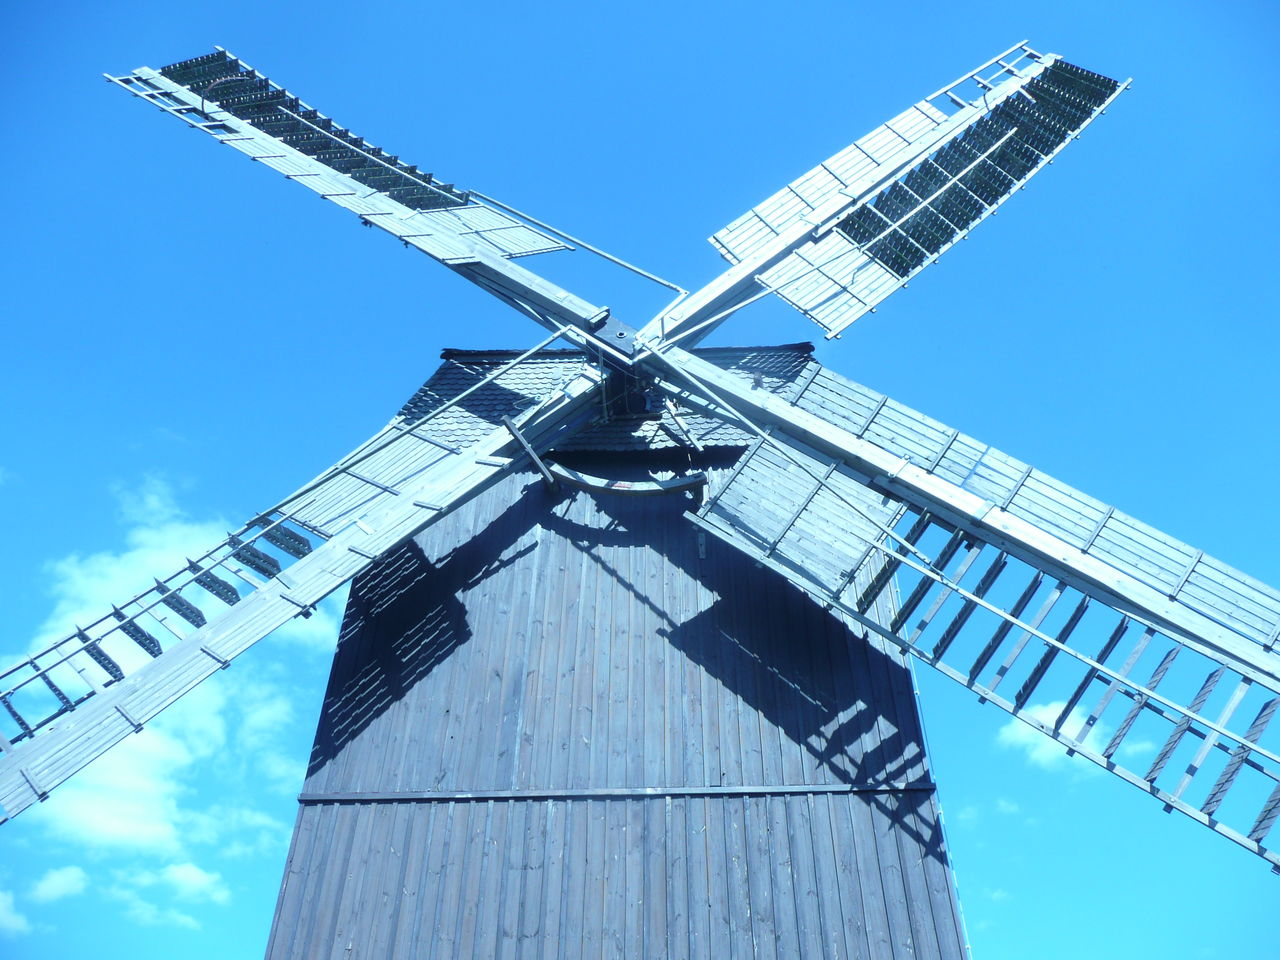 Architecture Brandenburg Industrial Revolution Low Angle View Old Windmill Outdoors Sky Windmill Wooden Windmill